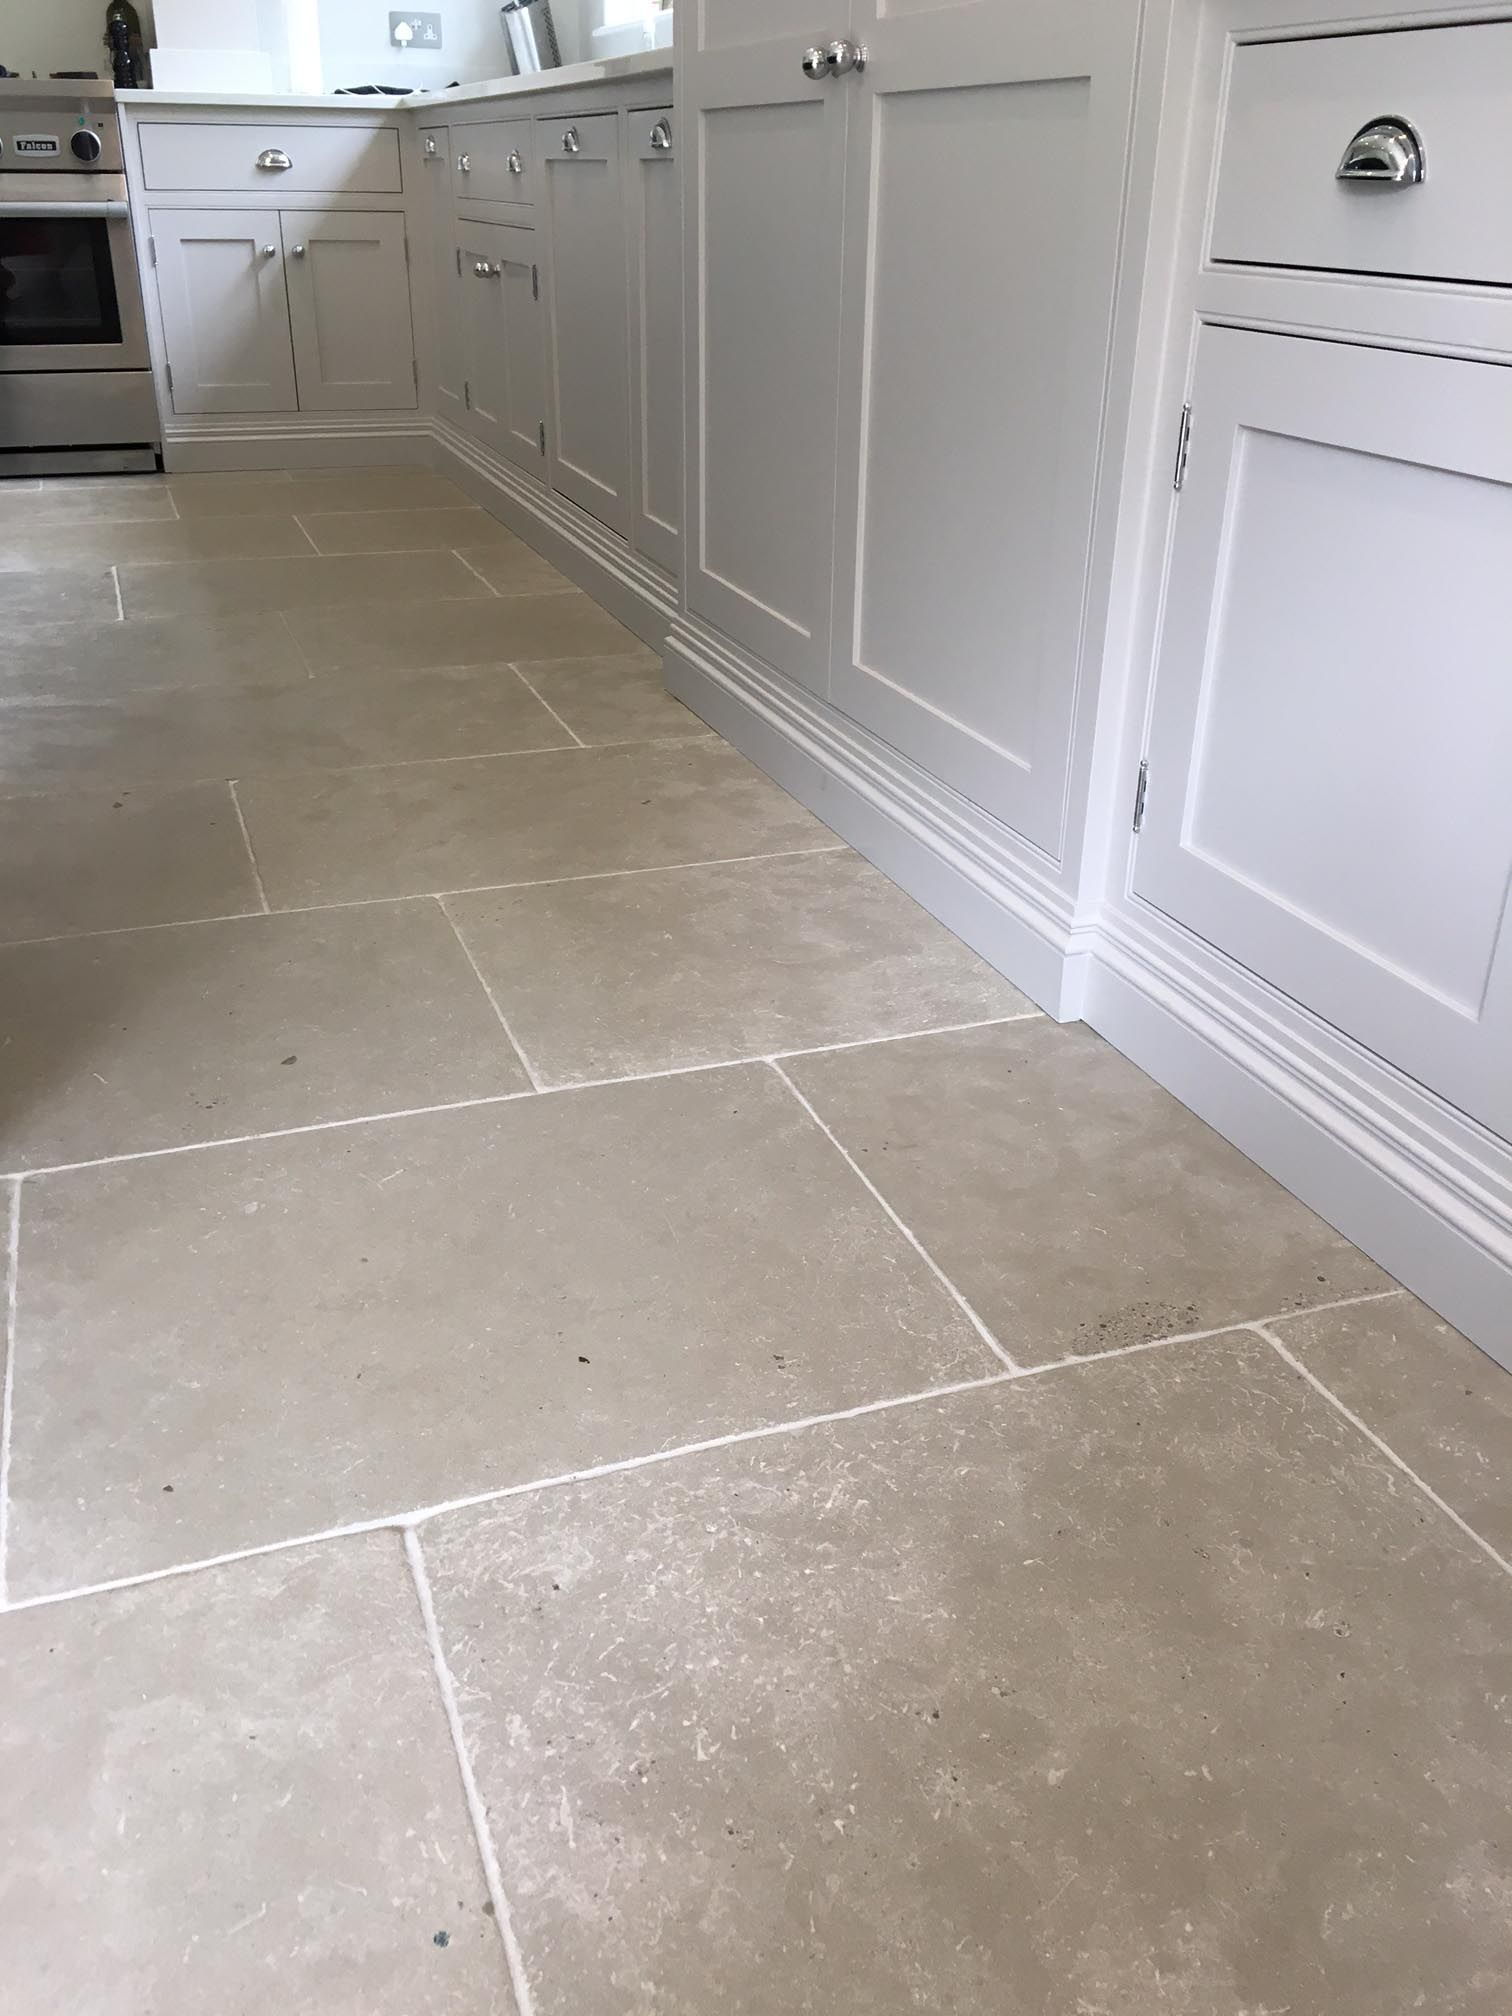 Sandstone Kitchen Floor Tiles Paris Grey Tumbled Limestone Kitchen Floor Tiles Http Www